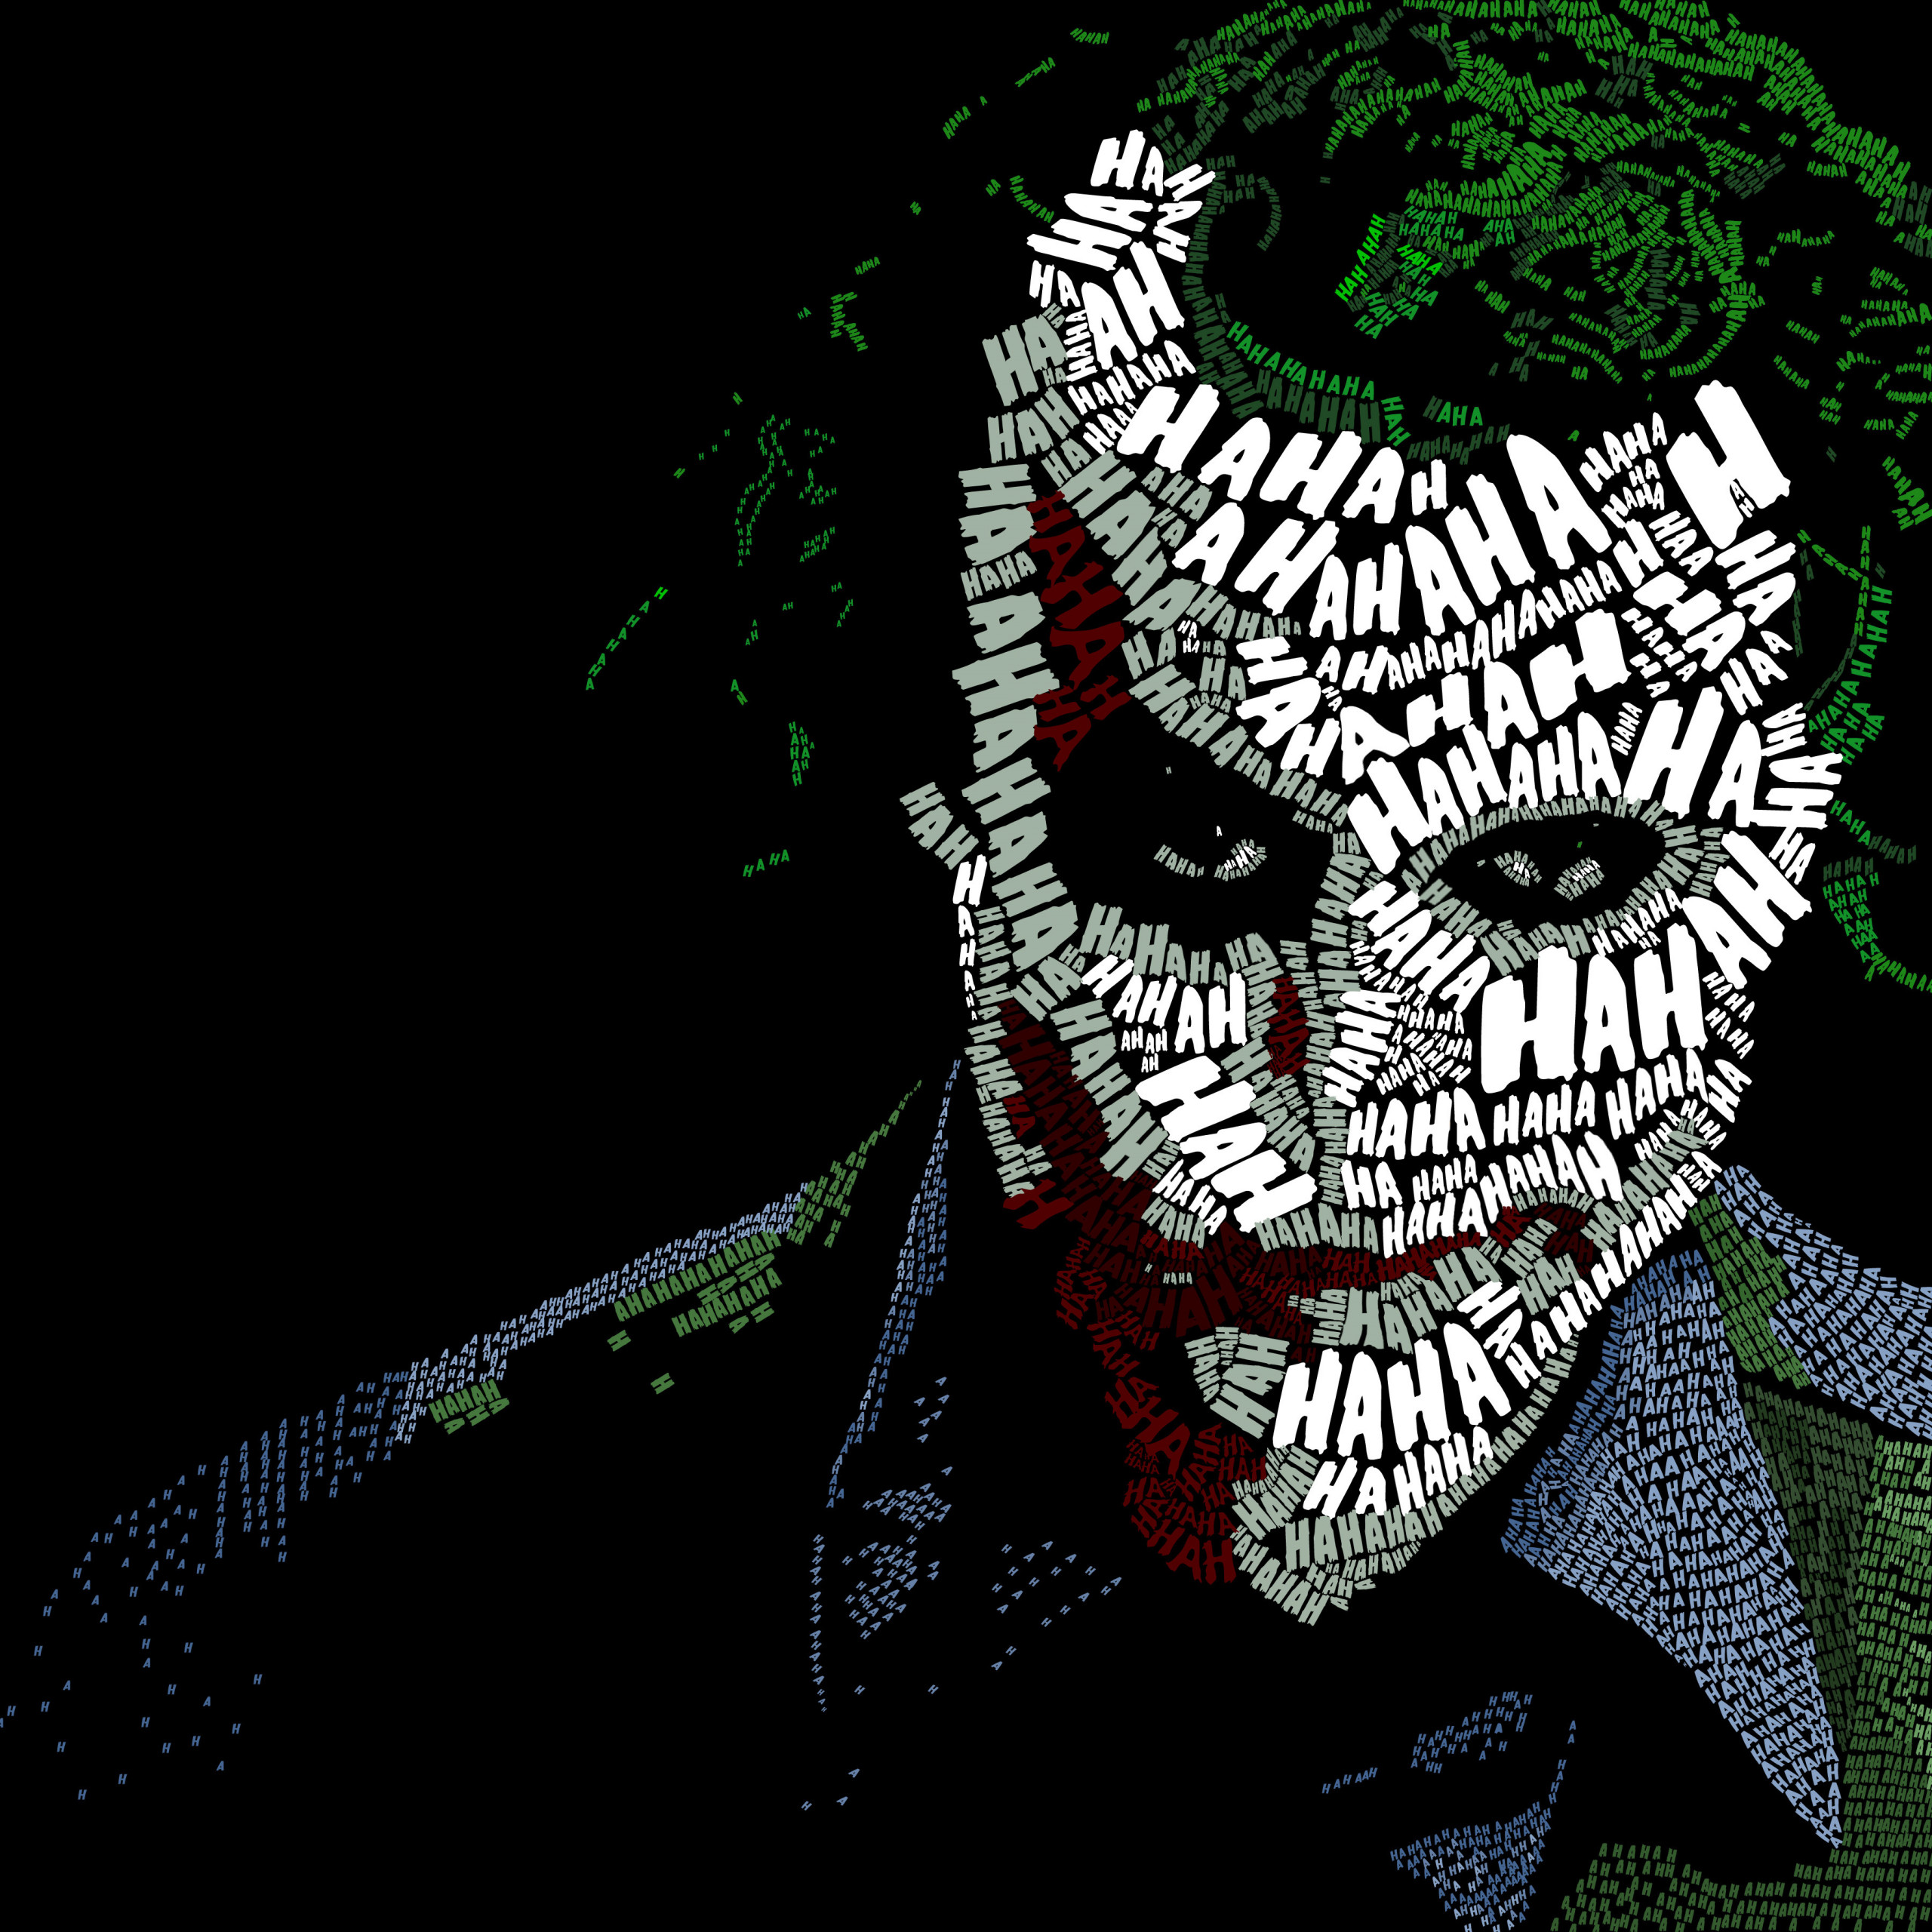 joker face text artwork rl